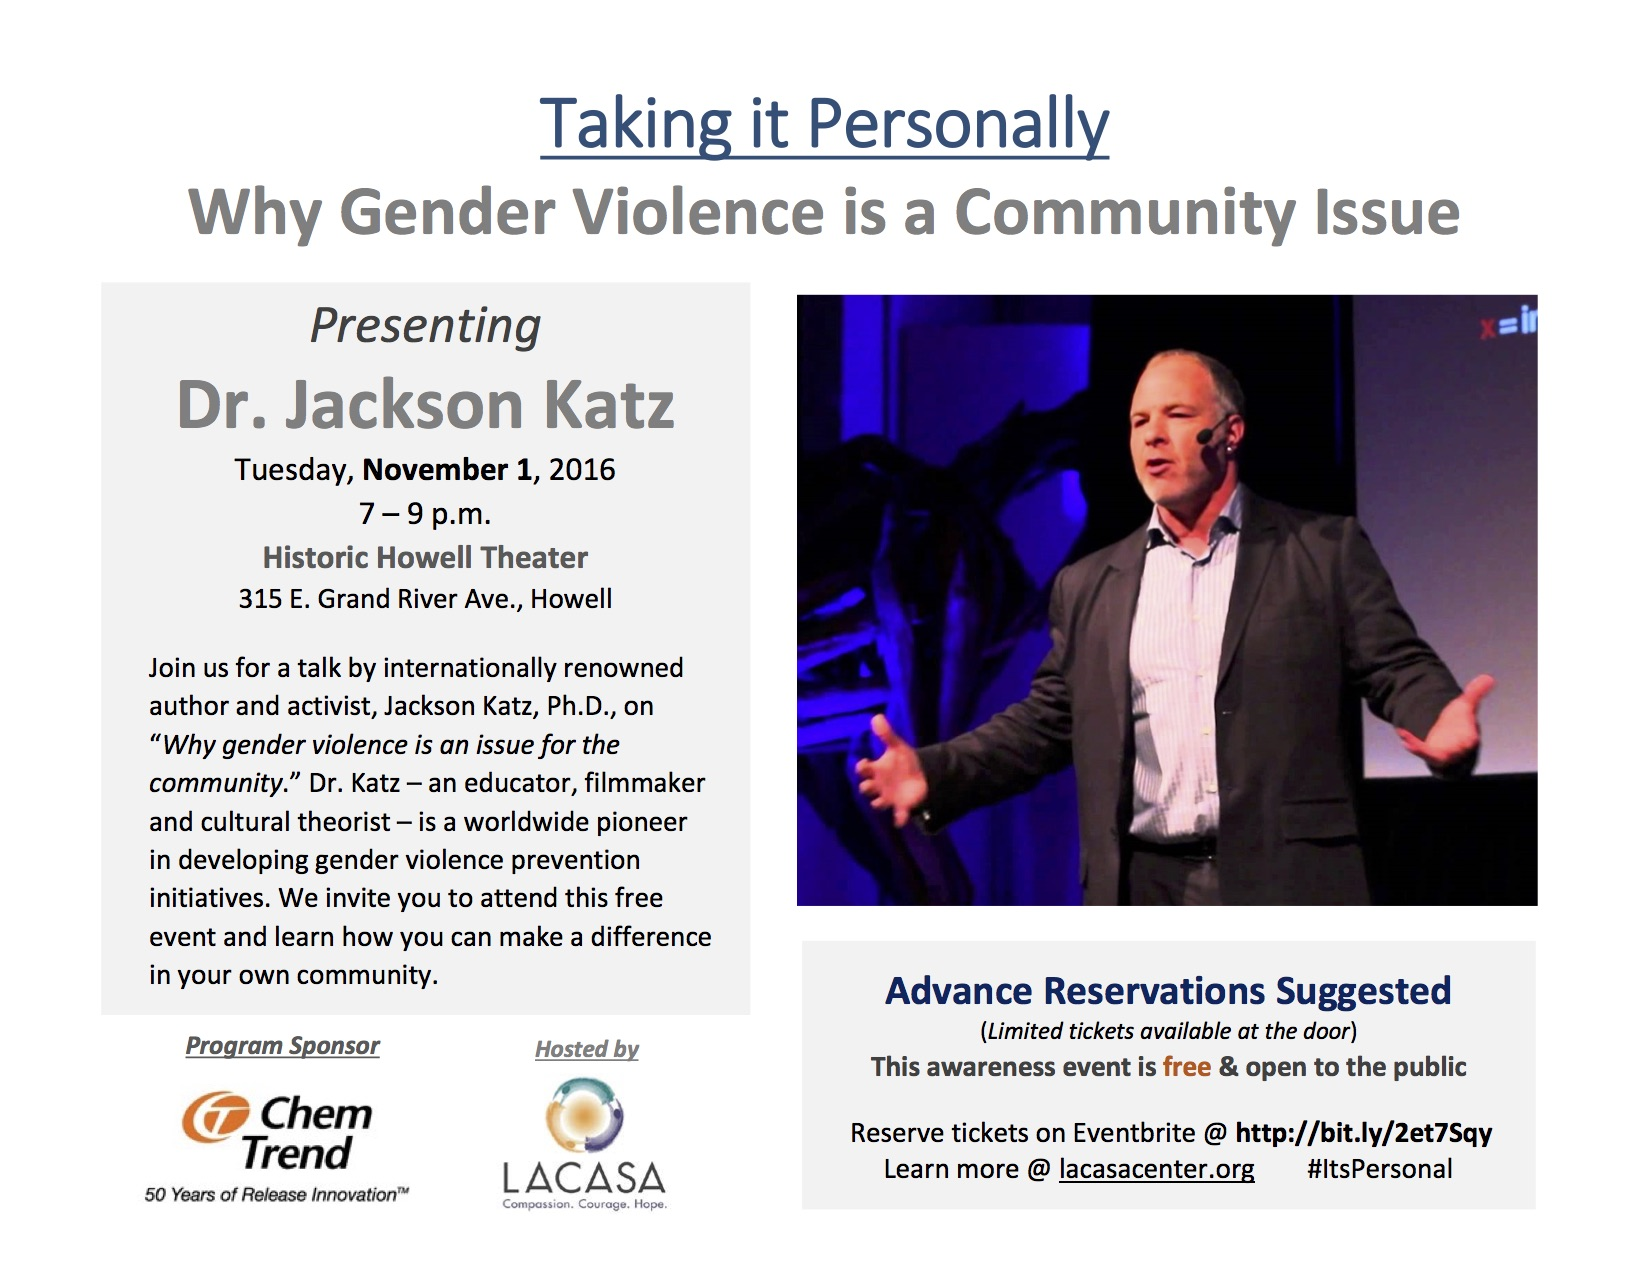 LACASA Jackson Katz Event Taking It Personally  finv6.jpg